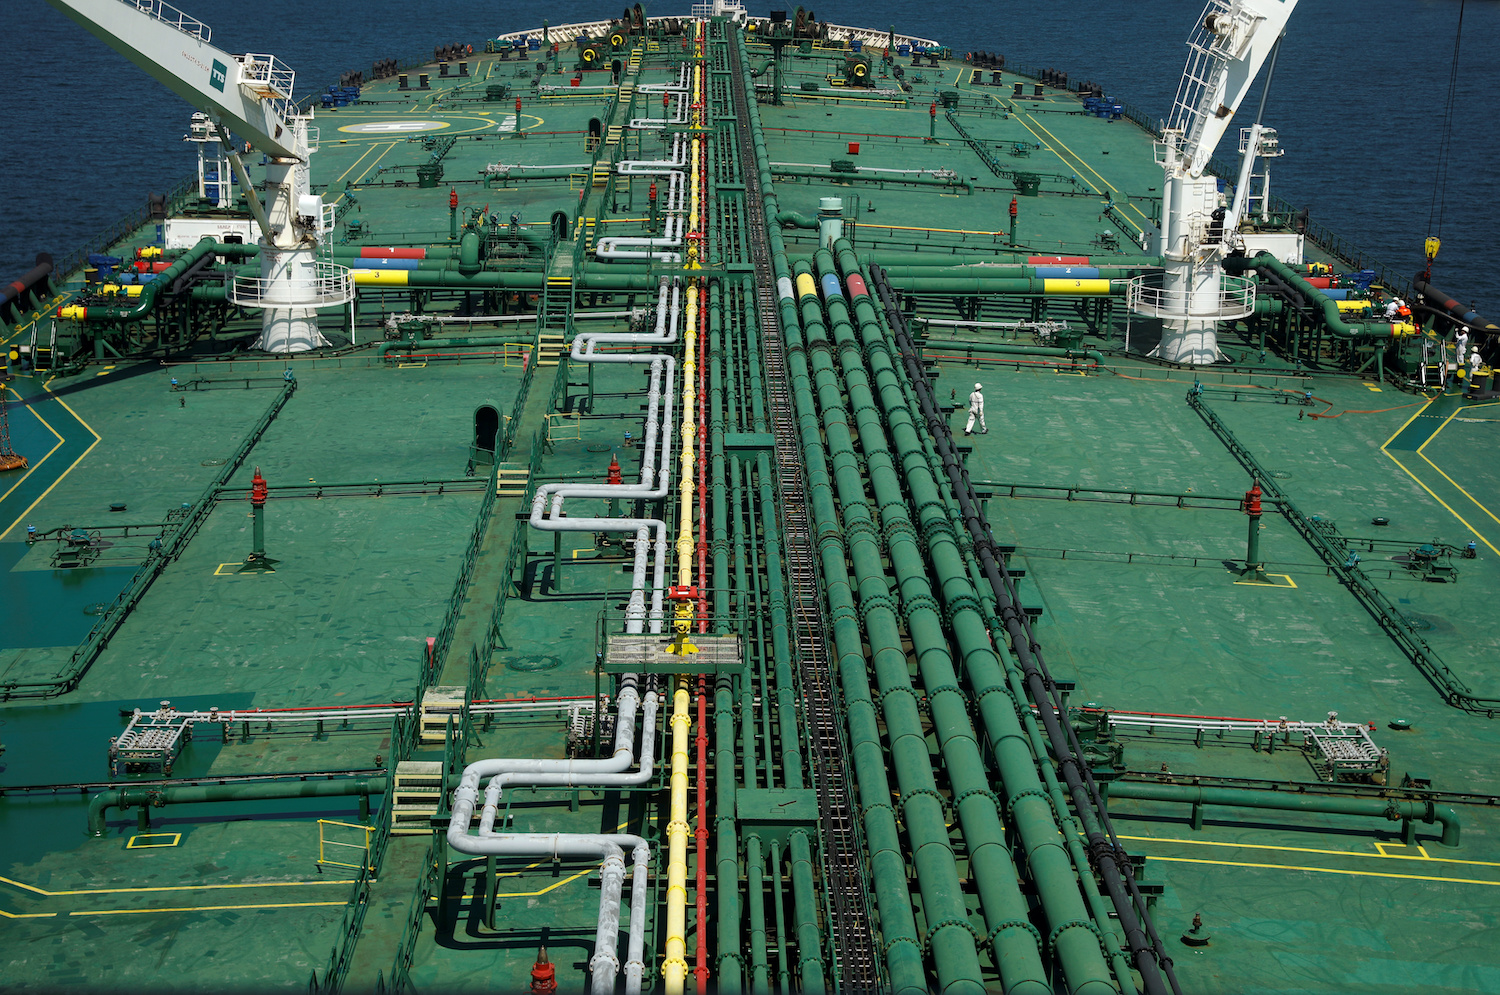 In an image from July last year, pipelines run along the deck of the supertanker Pu Tuo San, owned by the disgraced oil trading firm Hin Leong, in the waters off Jurong Island in Singapore. (Reuters Photo)